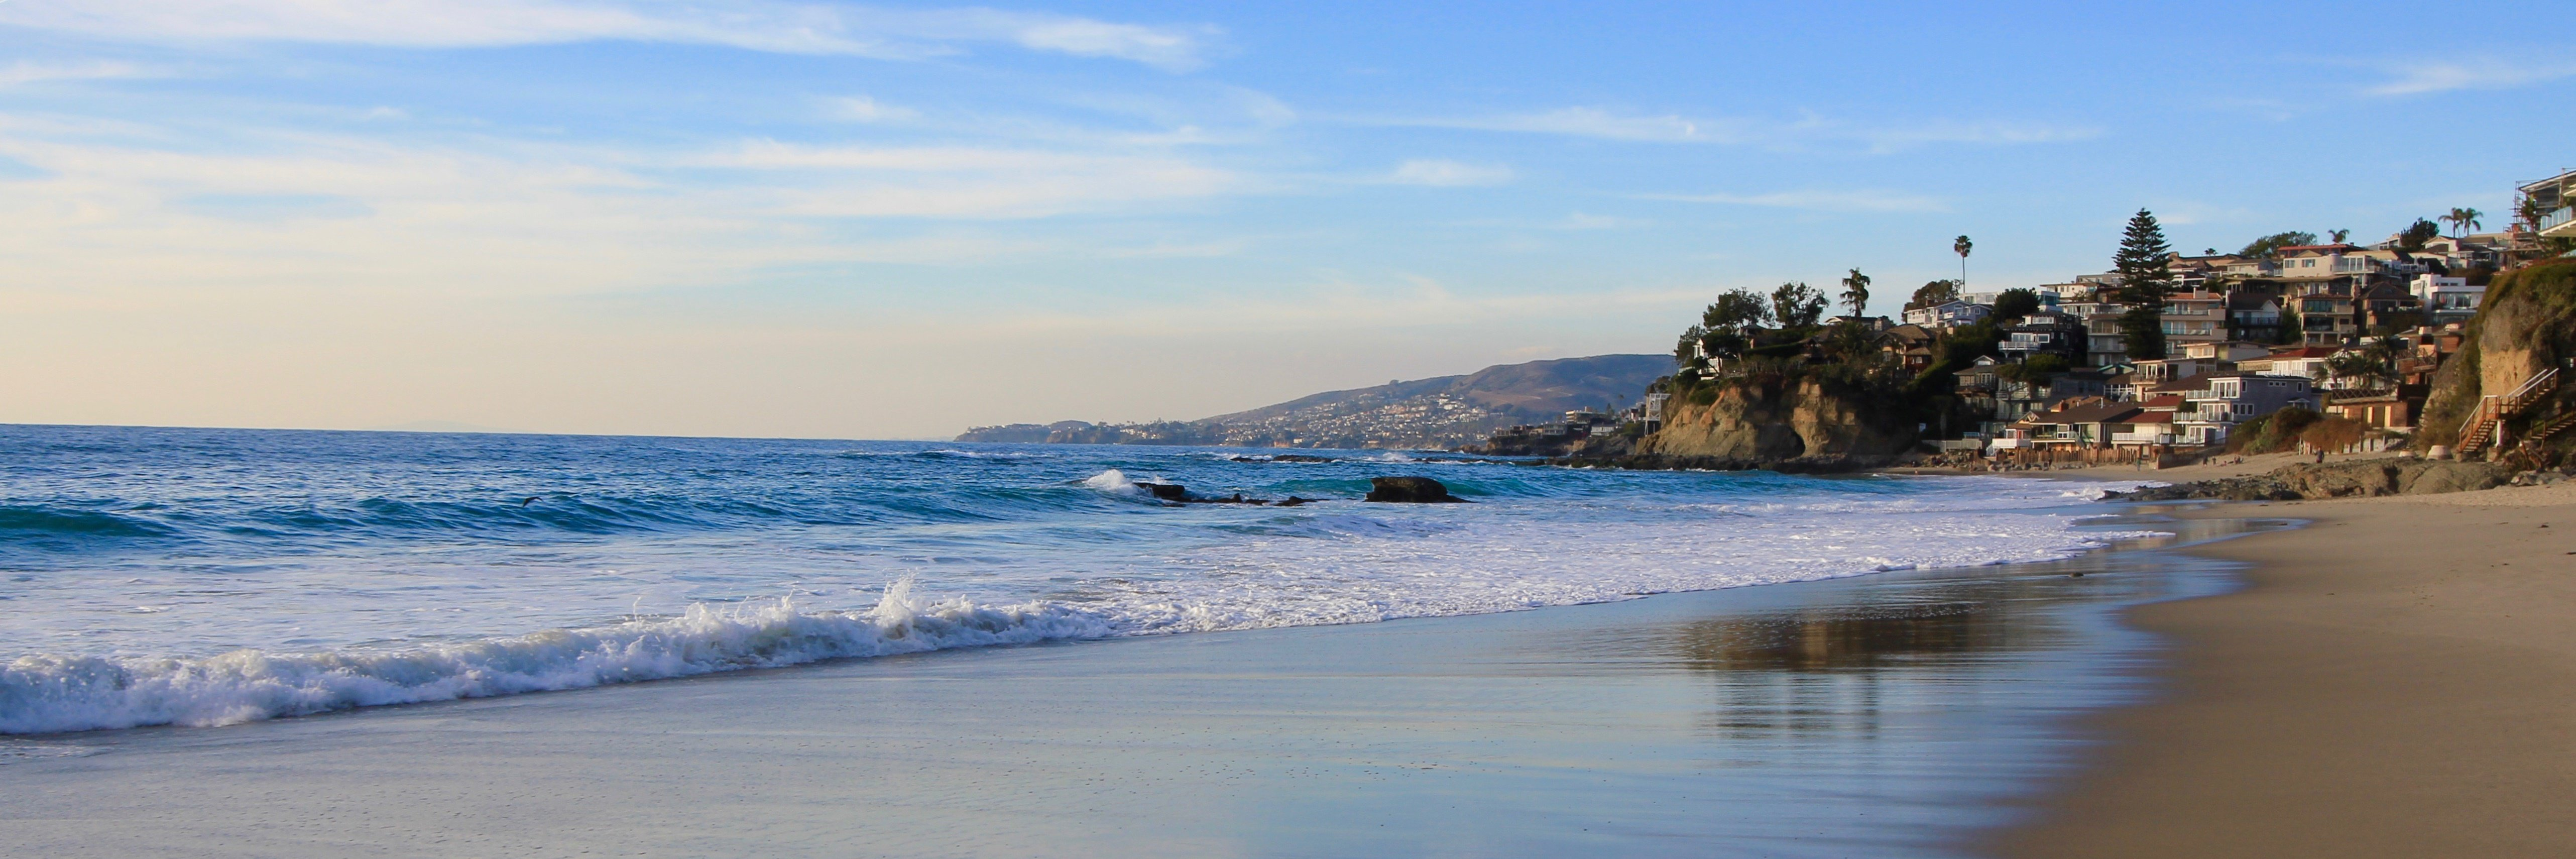 Victoria beach is a small private high end community of homes in Laguna Beach CA